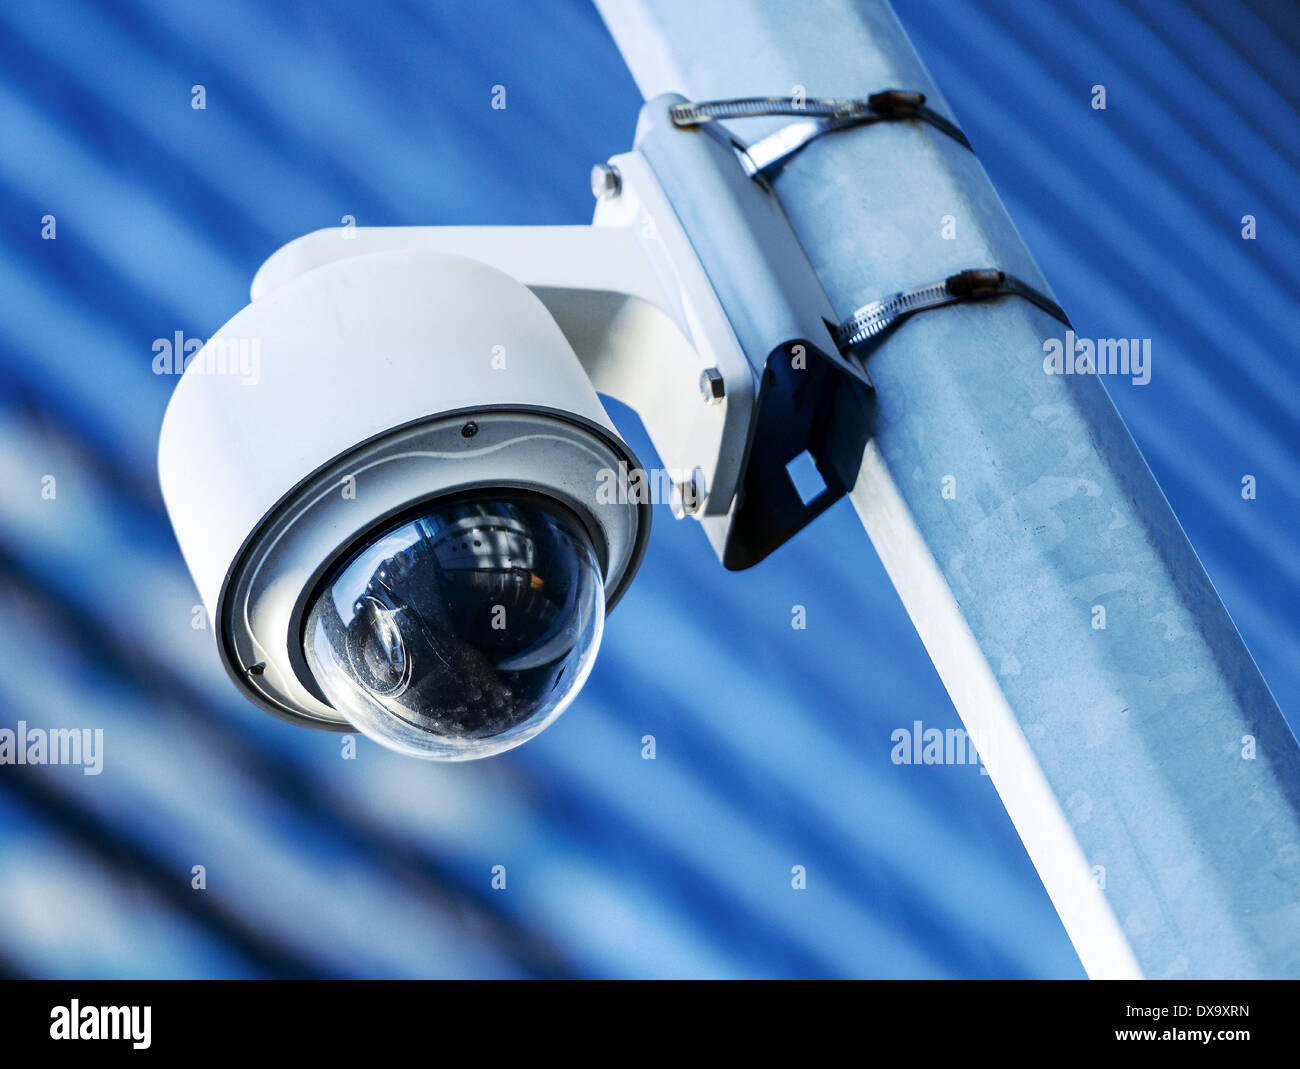 security camera or monitoring camera located in an urban environment - Stock Image